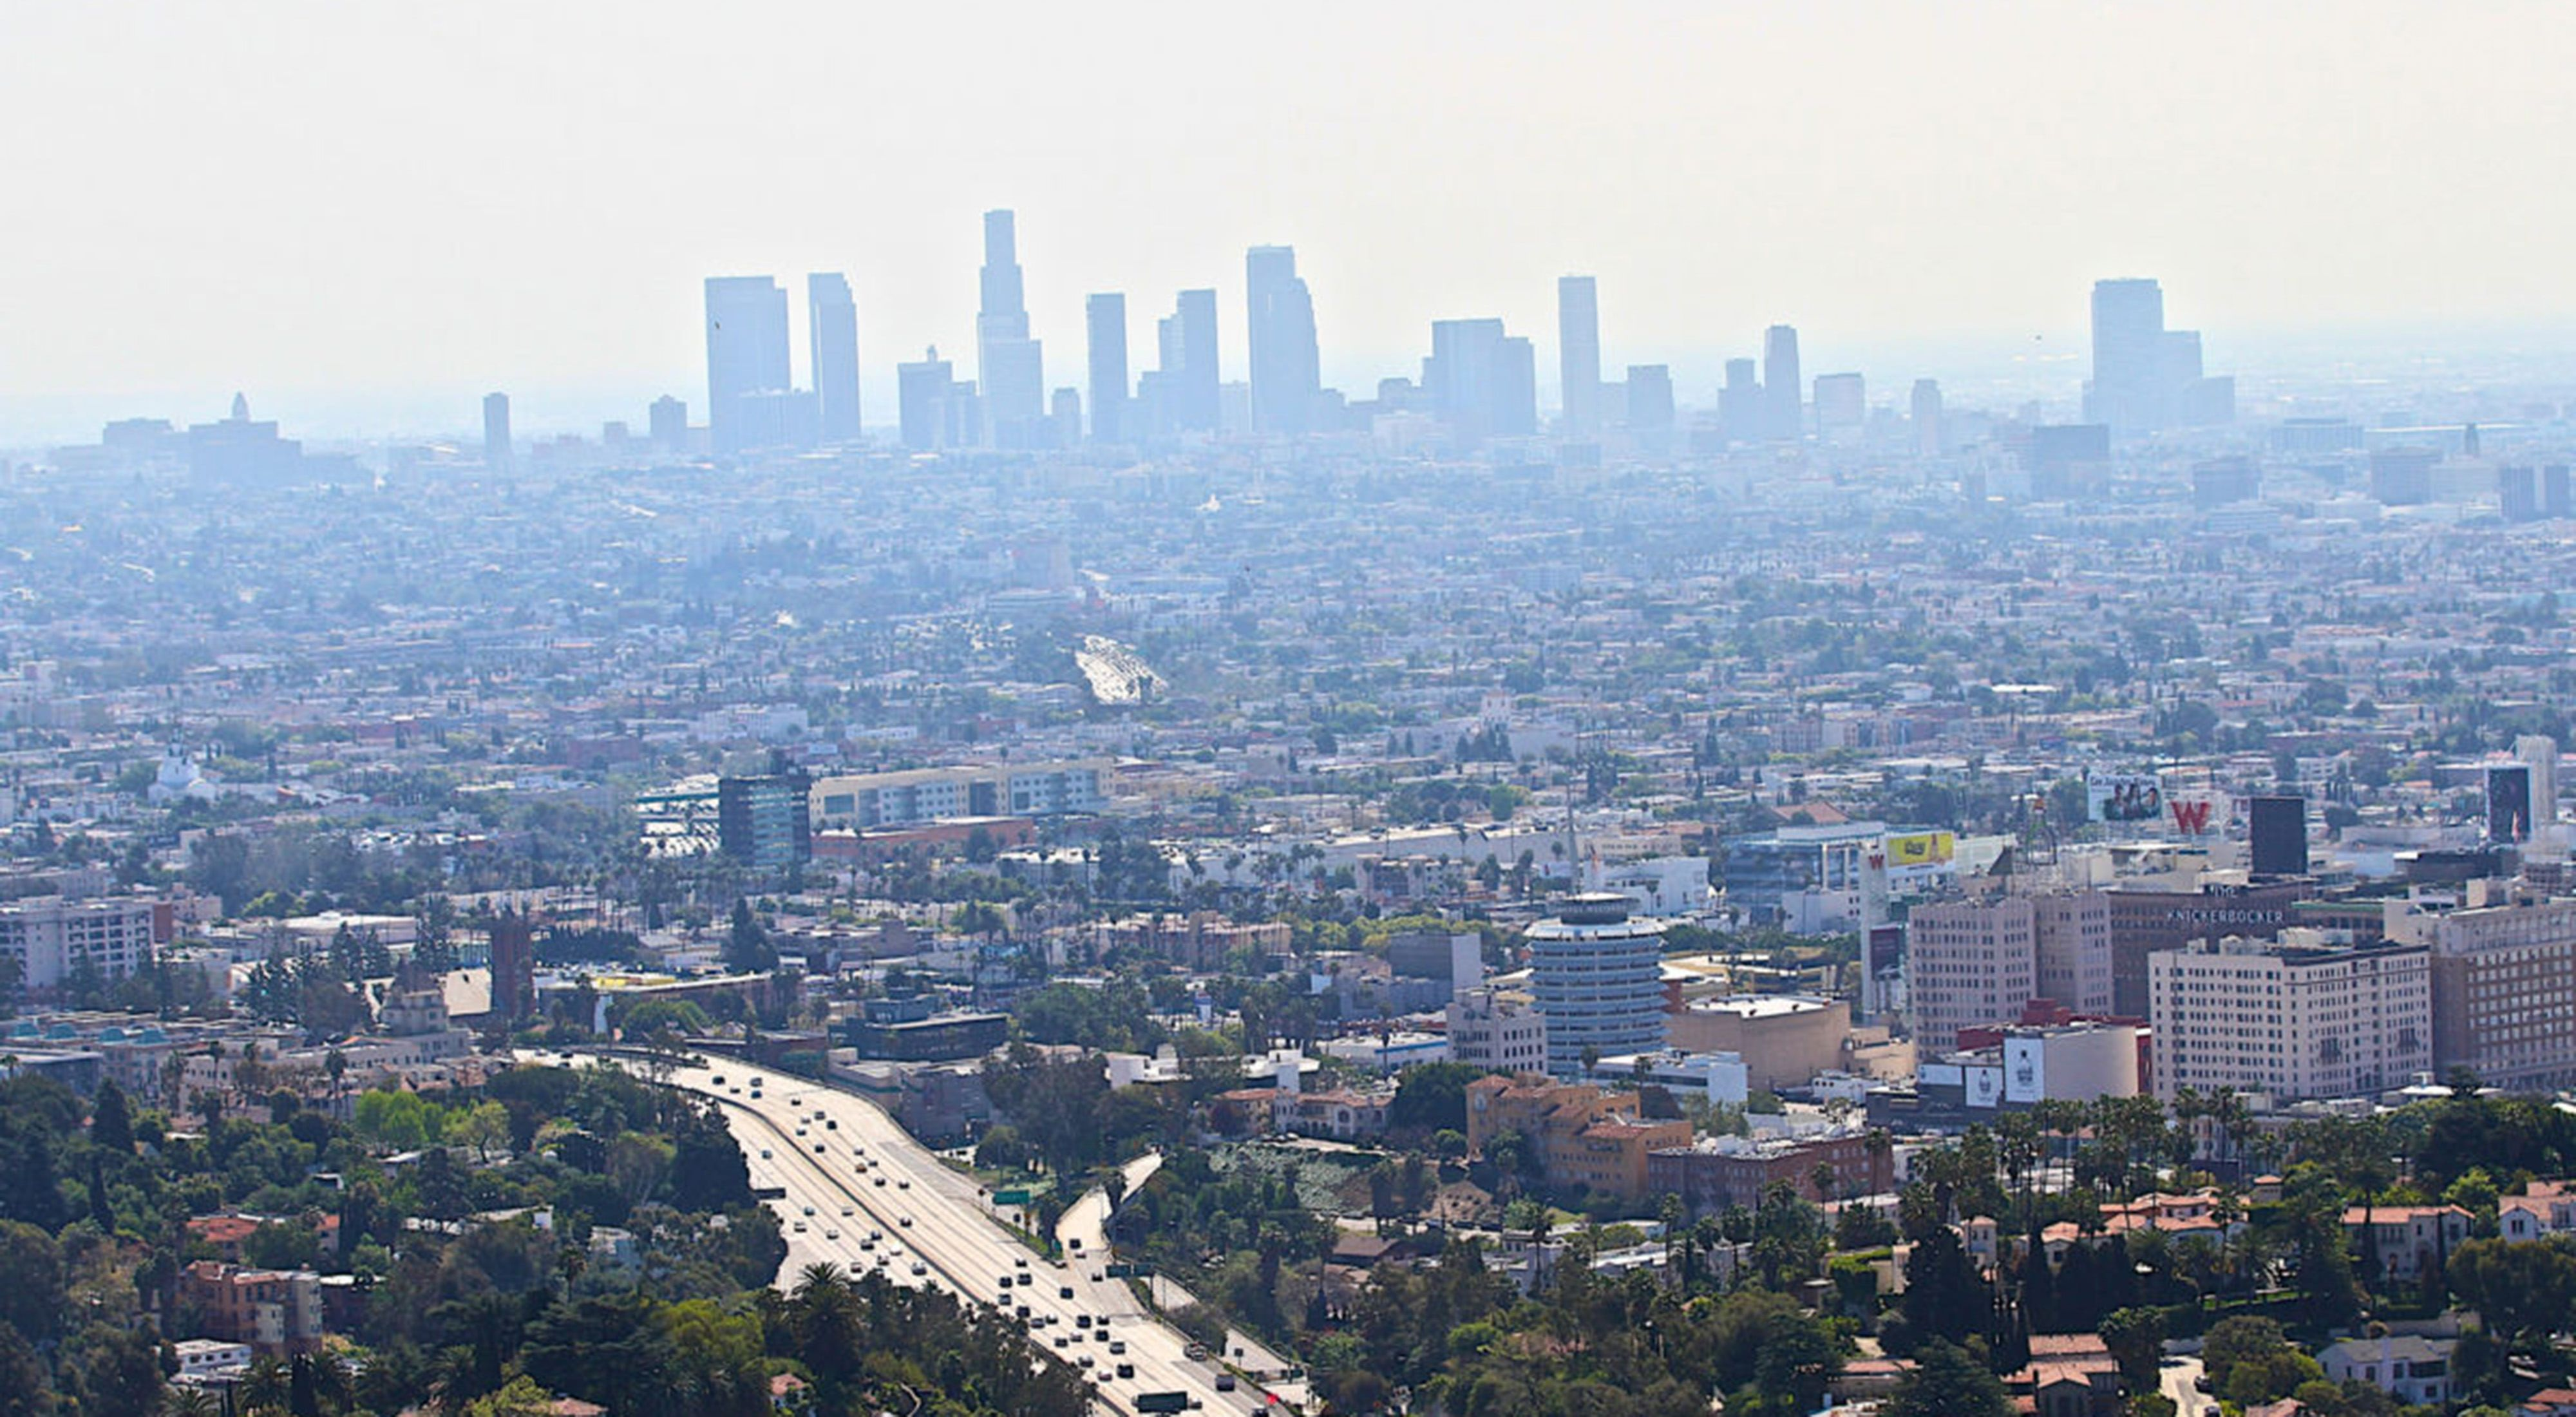 An aerial view of a highway and a large city skyline with smog